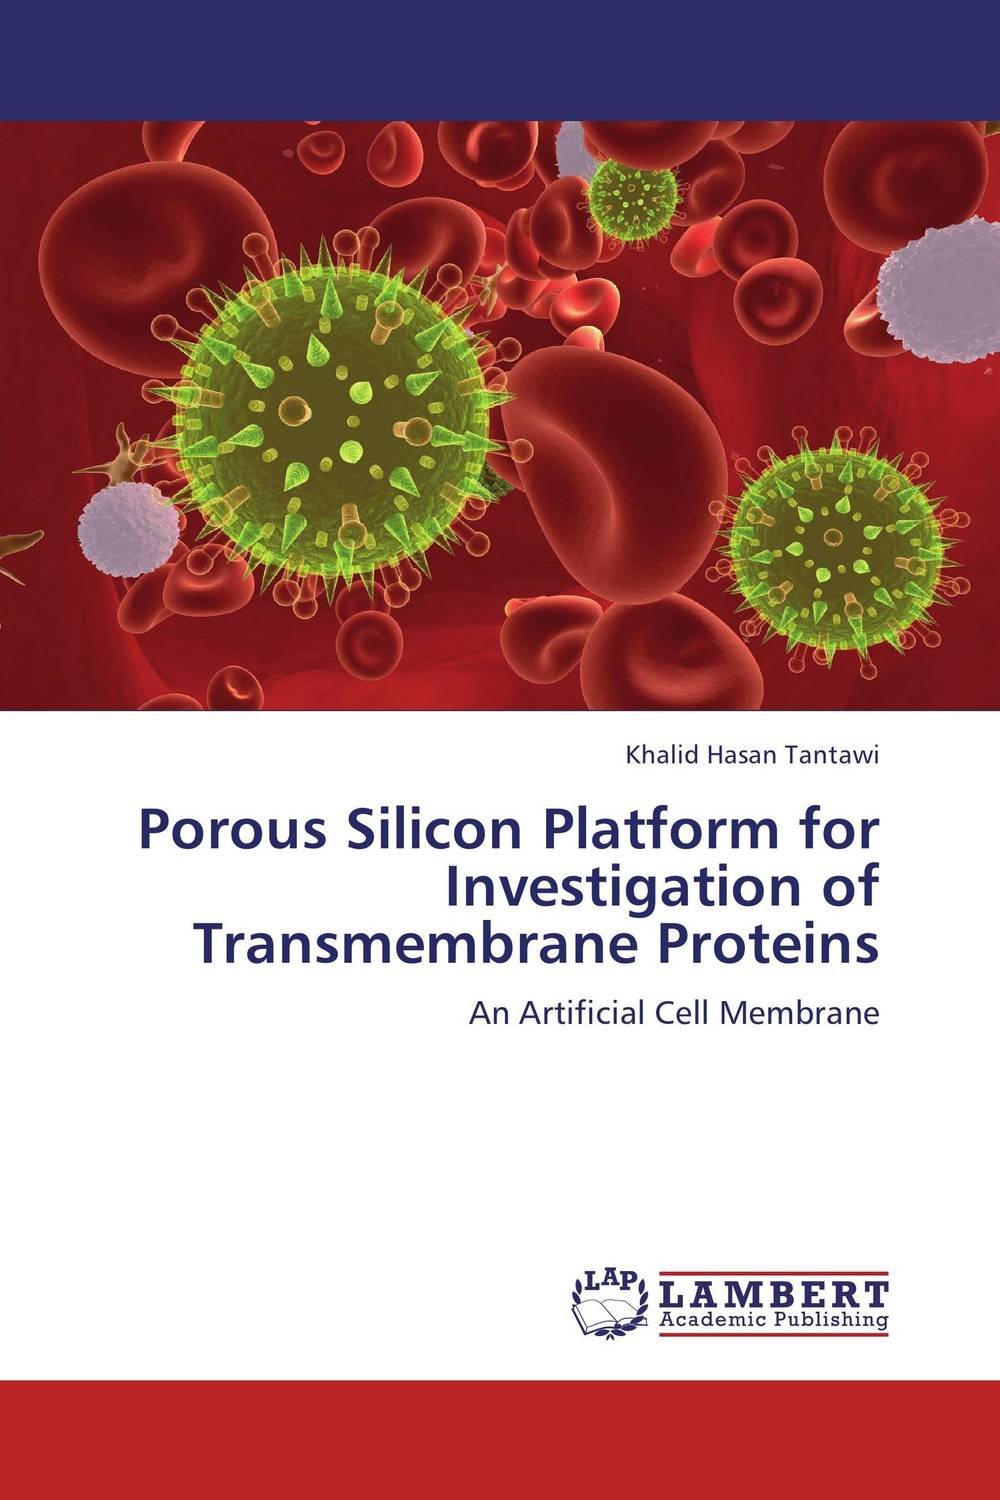 Porous Silicon Platform for Investigation of Transmembrane Proteins receptor membrane ring h2 rmr proteins in plants